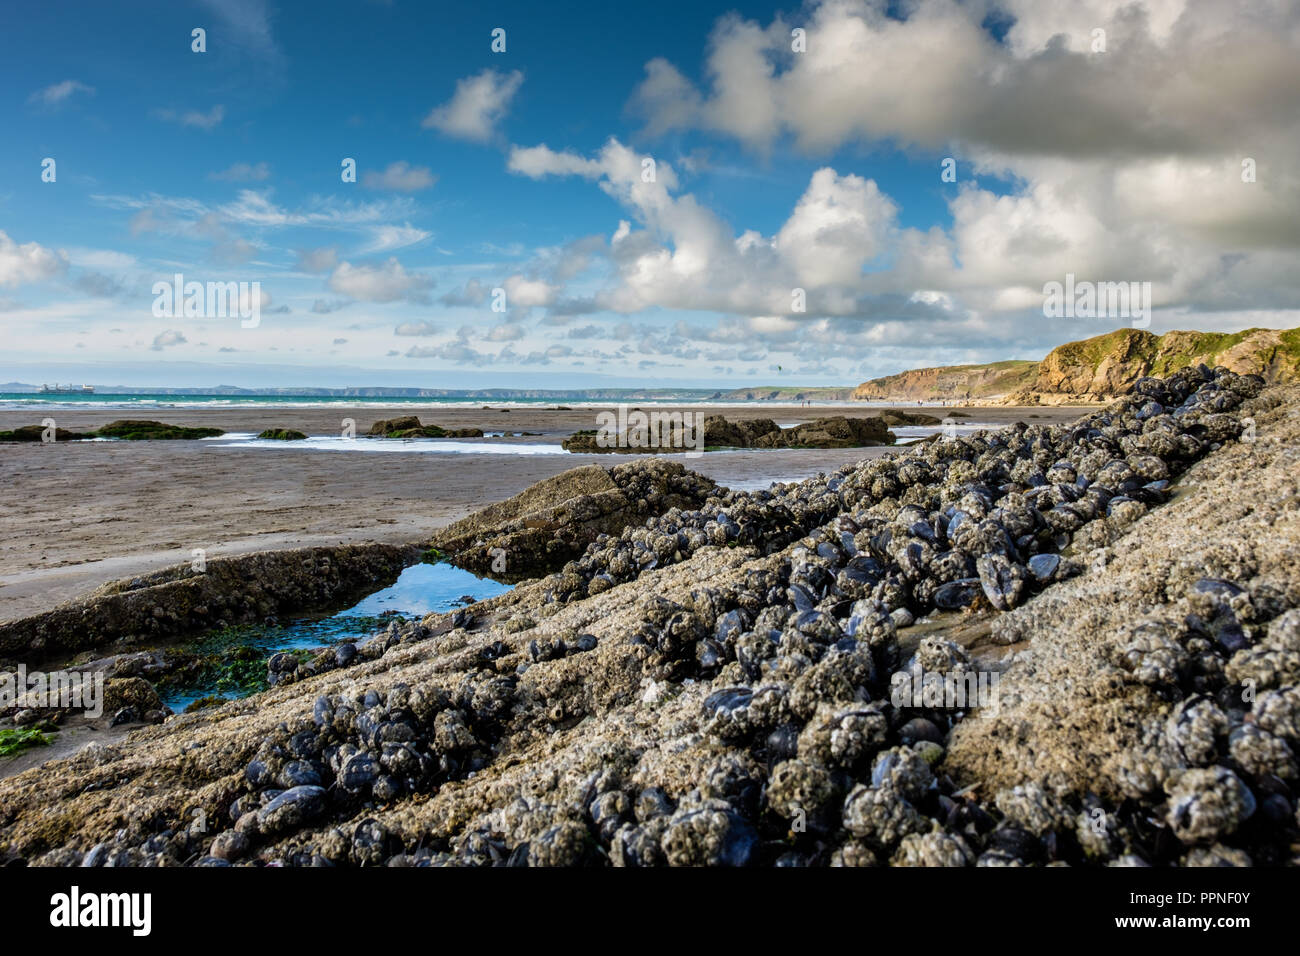 The beach at Little Haven, Pembrokeshire, Wales - Stock Image